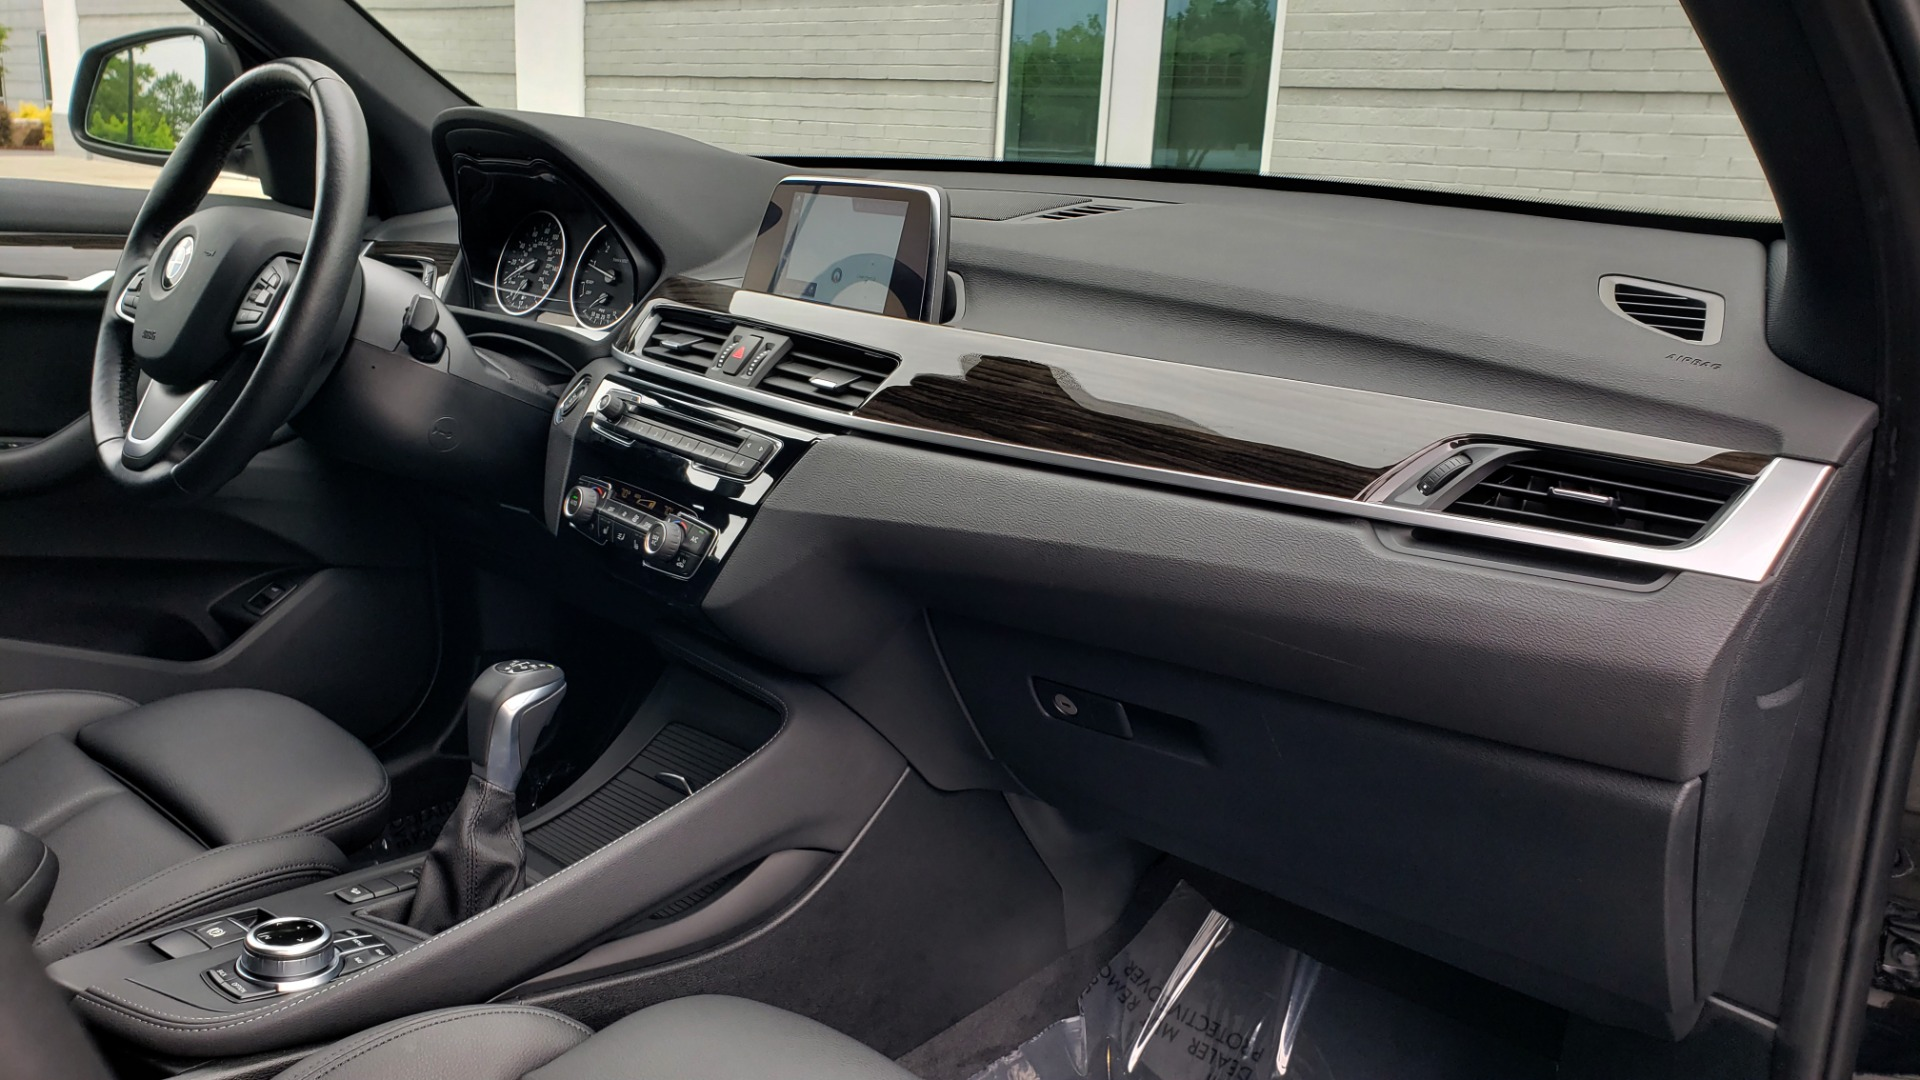 Used 2018 BMW X1 XDRIVE28I / CONV PKG / NAV / HTD STS / PANO-ROOF / REARVIEW for sale $30,995 at Formula Imports in Charlotte NC 28227 70